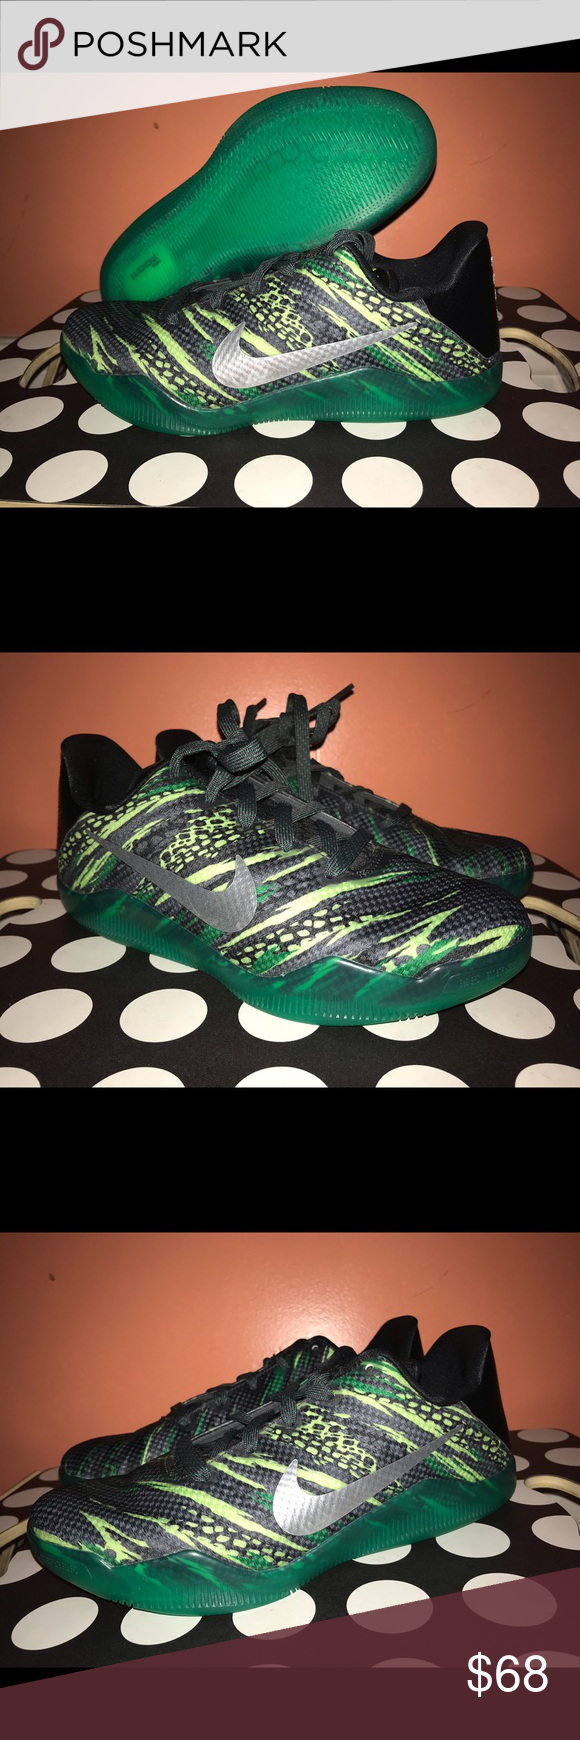 quality design 522f2 88df1 Nike Kobe 11 GS Green Snake Basketball Shoes Brand new shoes without box.  10